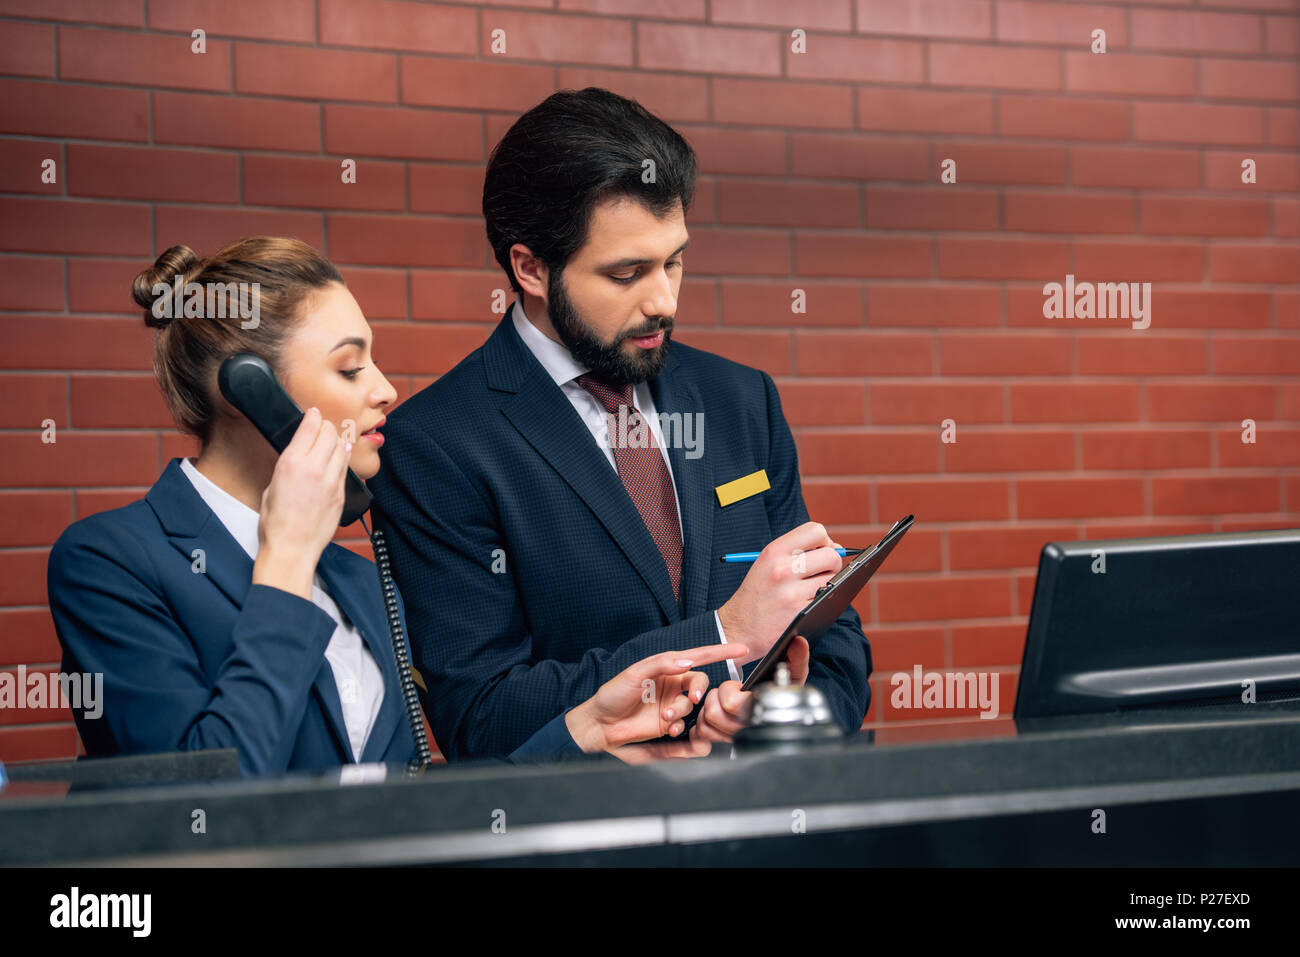 concentrated hotel receptionists receiving call from customer at workplace - Stock Image